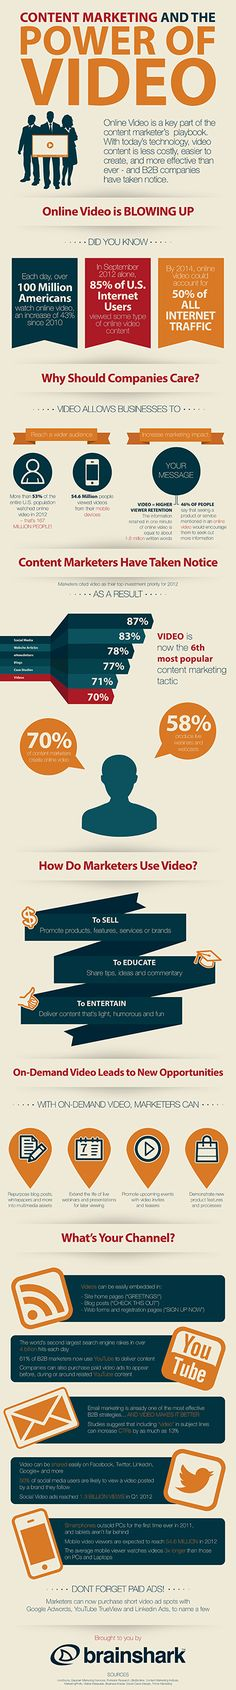 Content marketing and the power of video #infographic